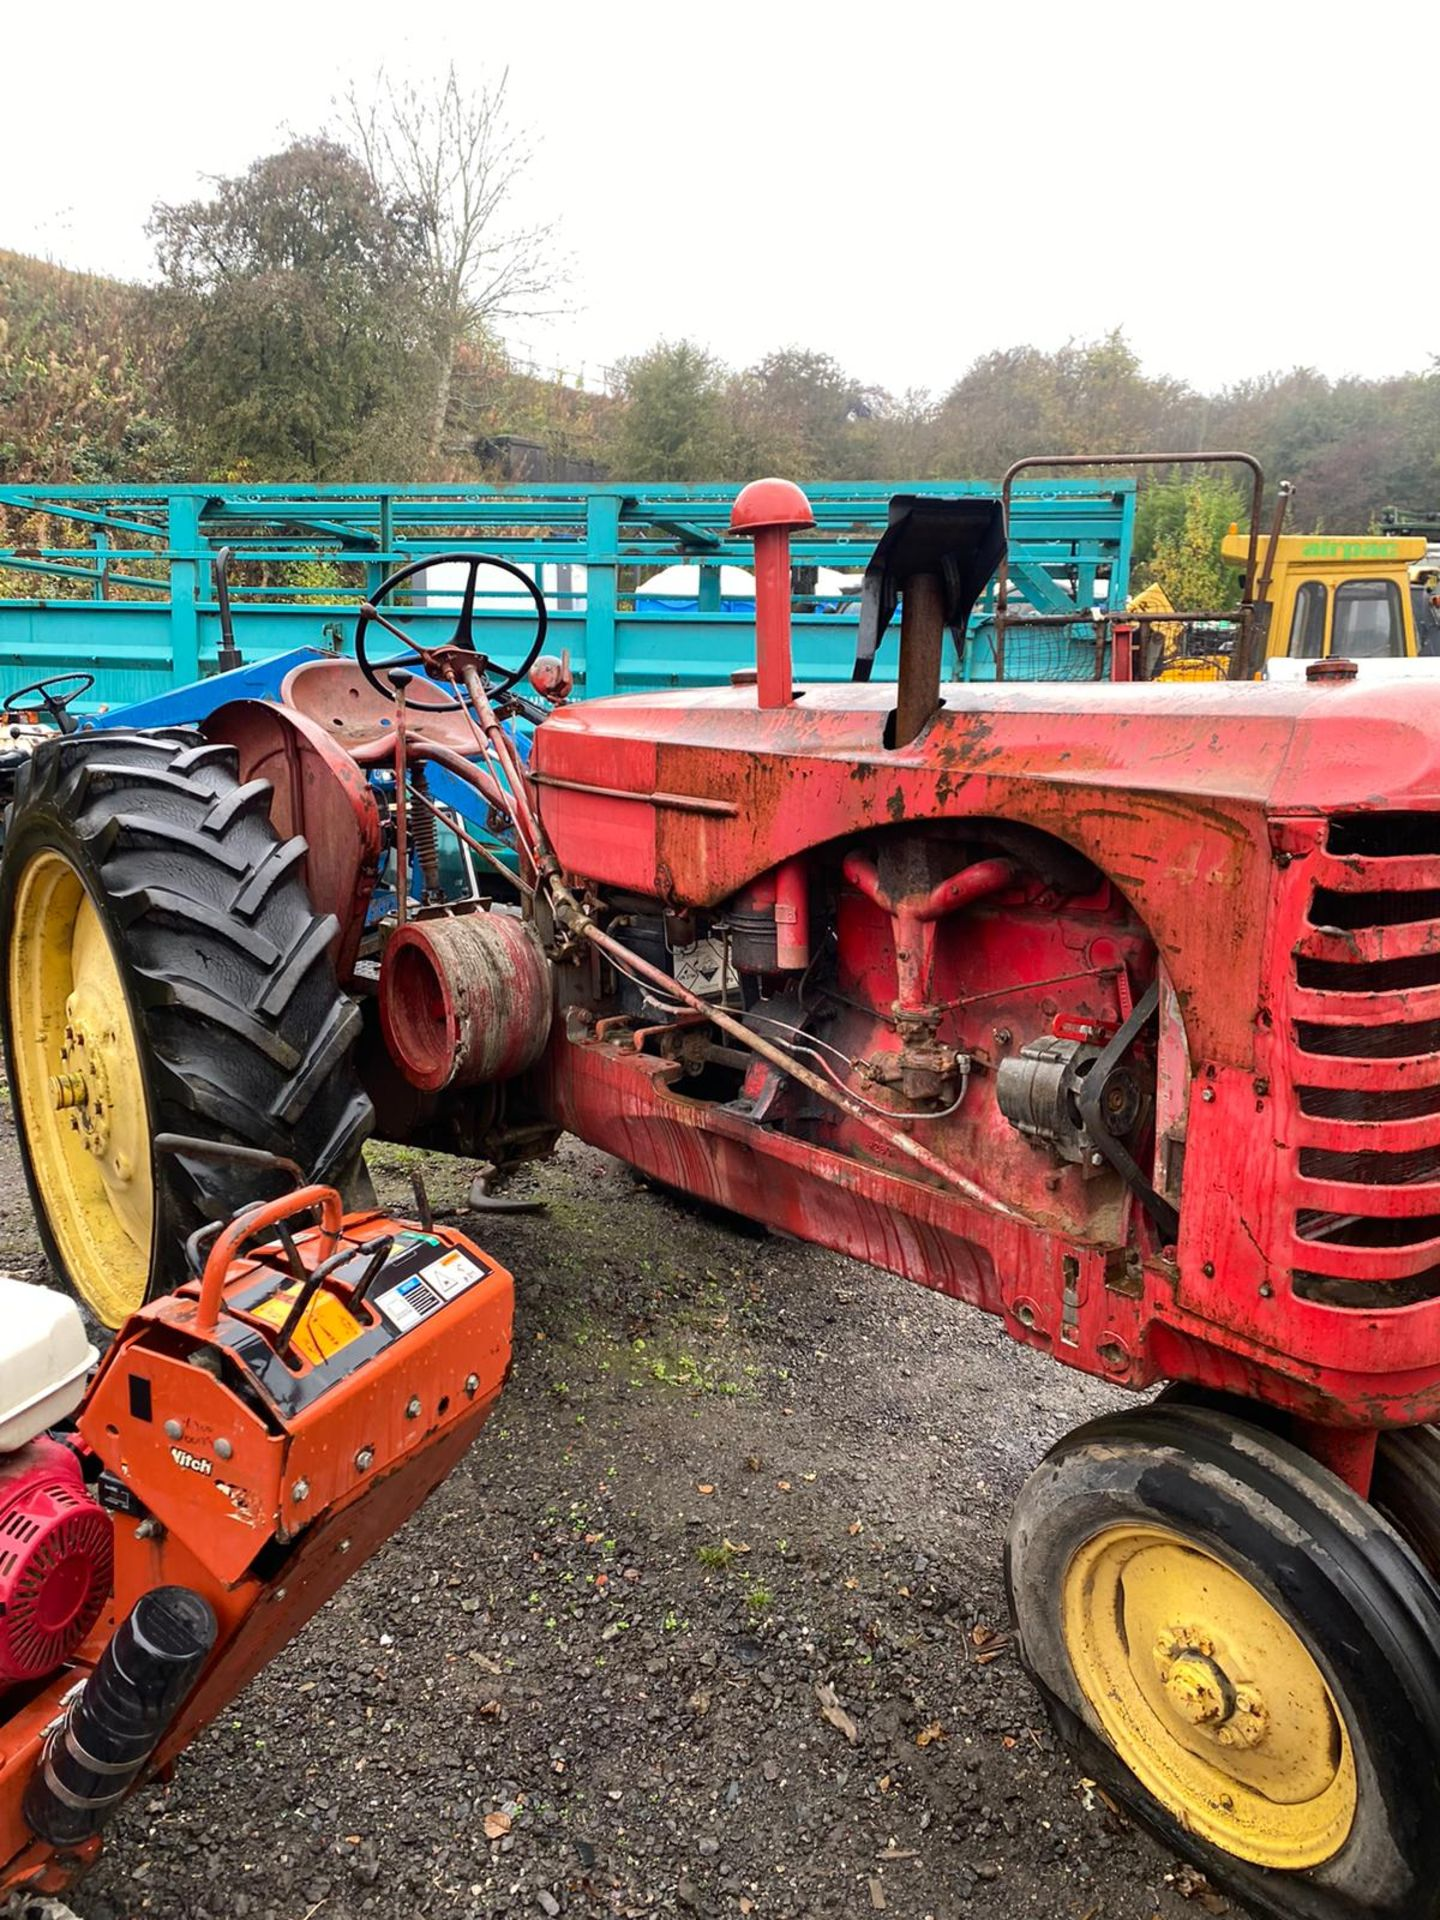 REAR VINTAGE MASSEY HARRIS 3 WHEEL TRACTOR *PLUS VAT* - Image 2 of 5